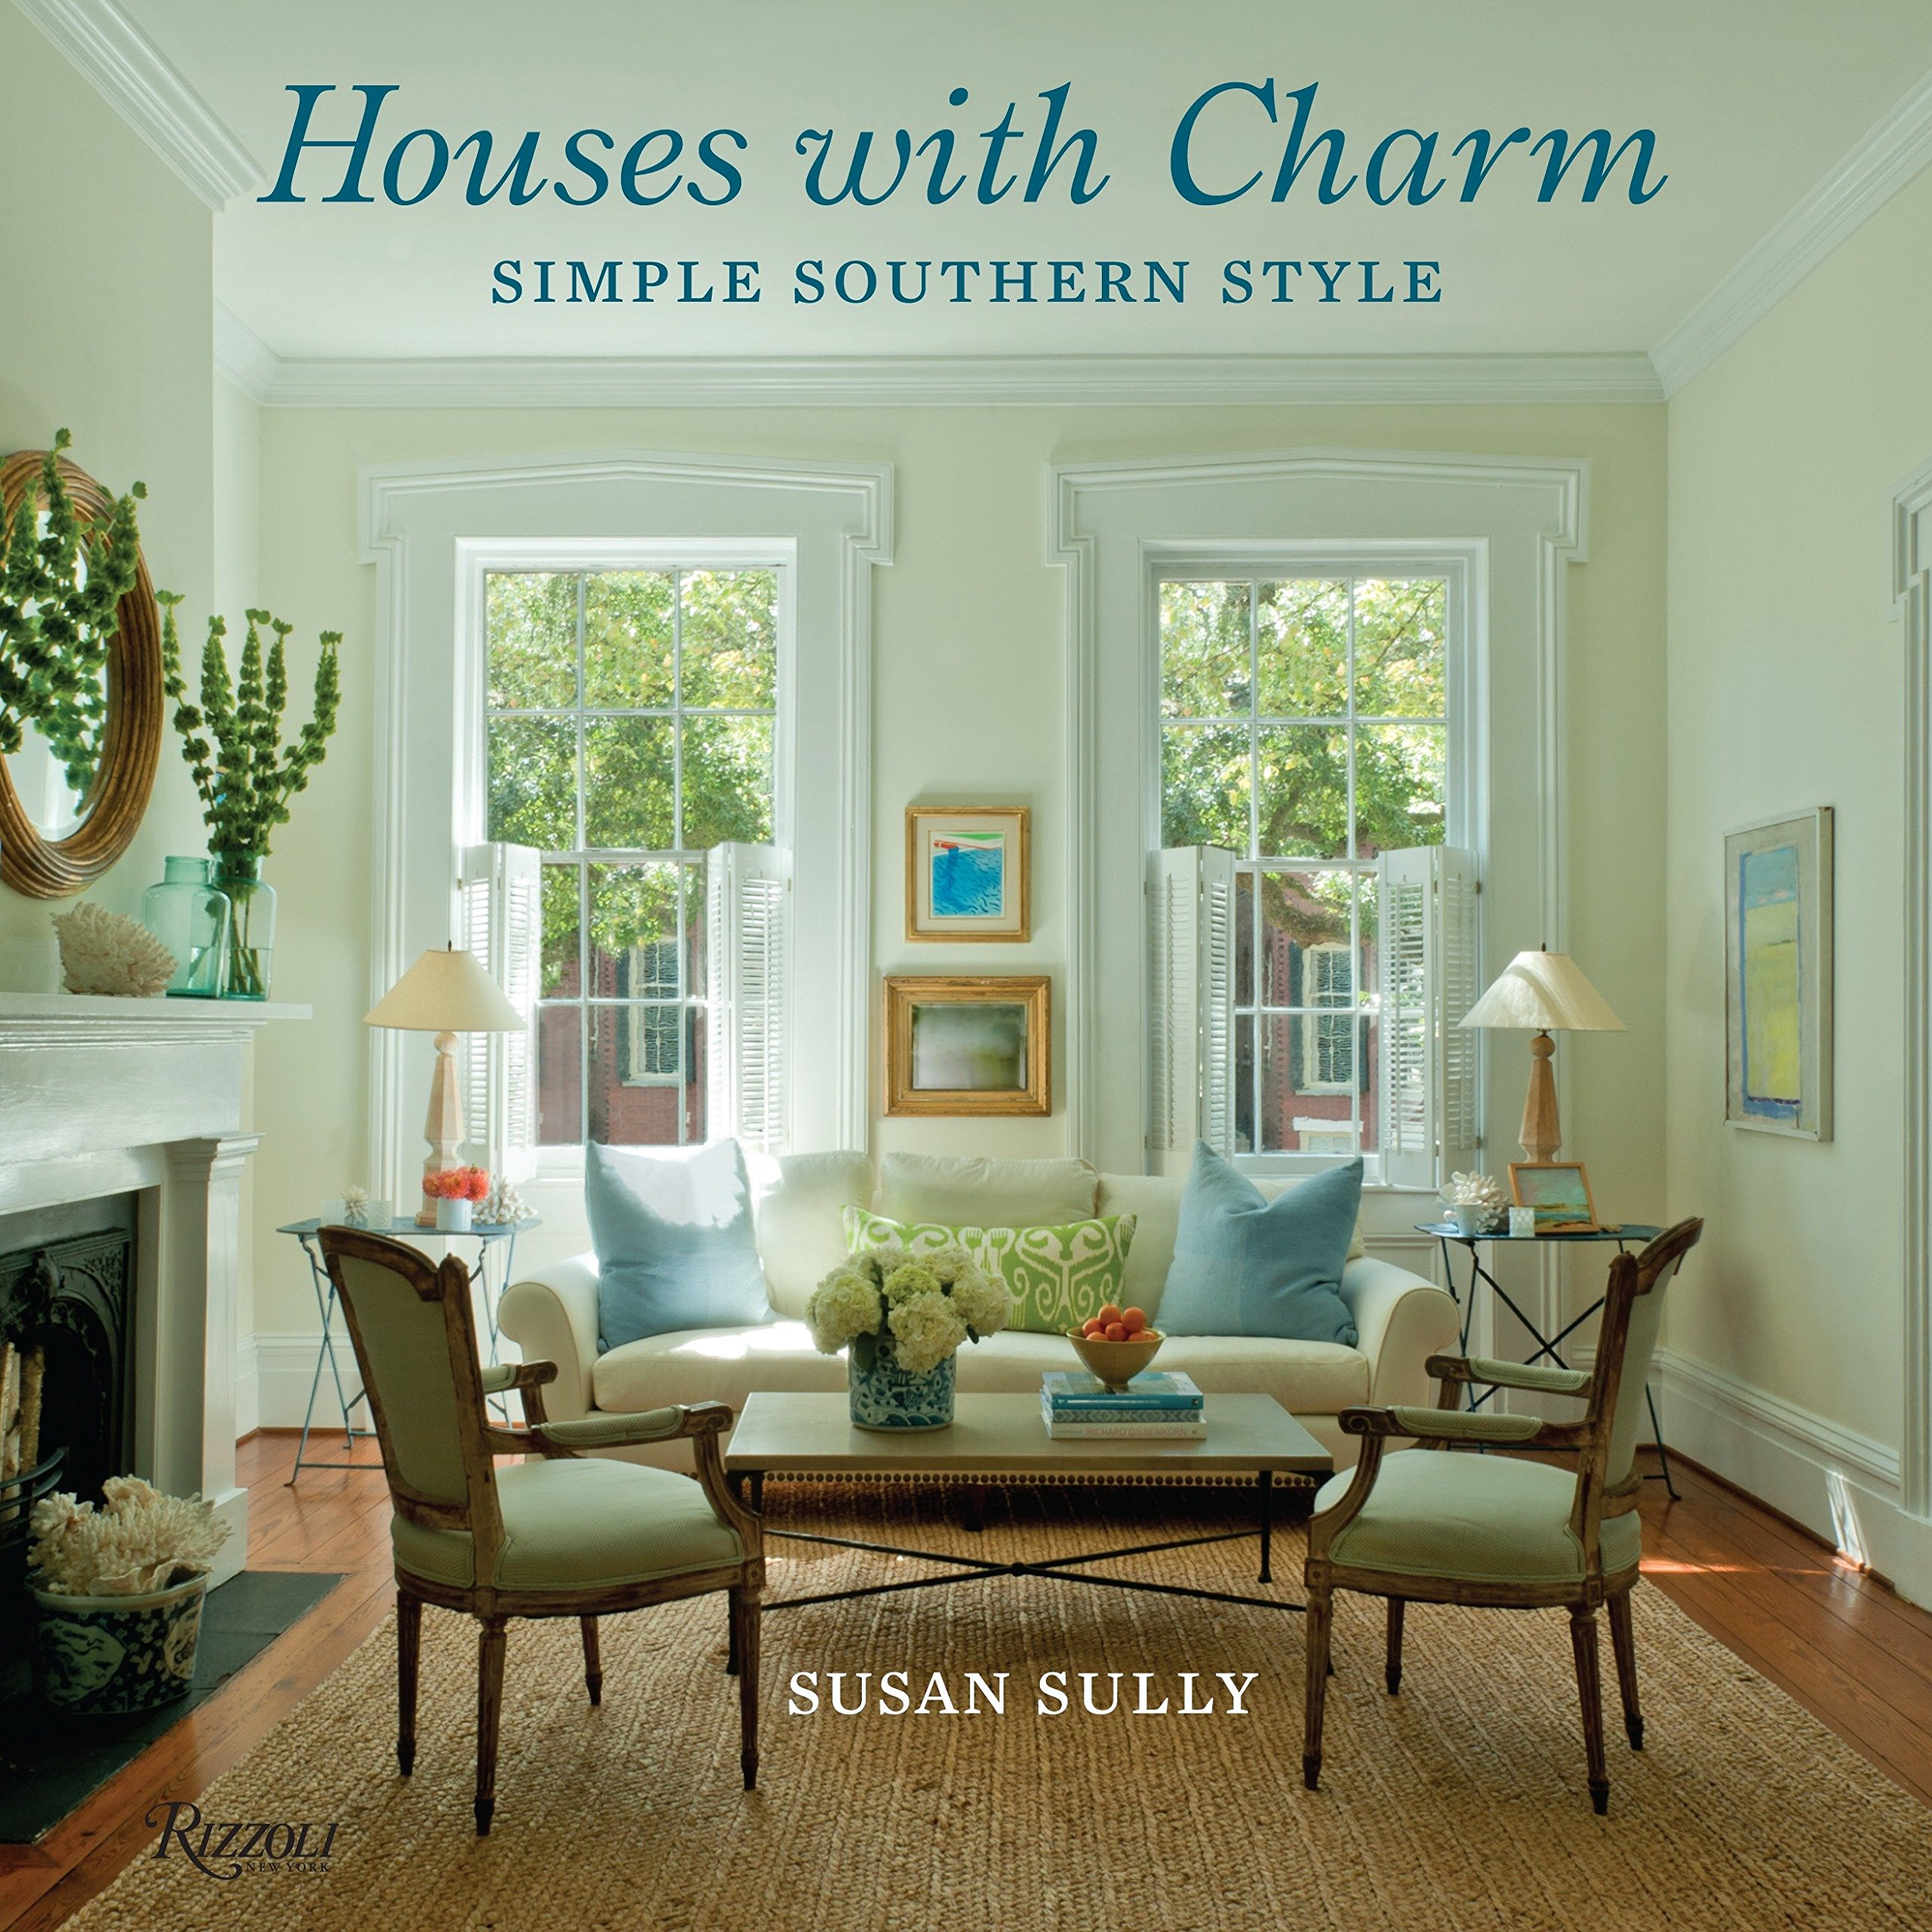 Follow the Author & Houses with Charm: Simple Southern Style: Susan Sully: 9780847840076 ...